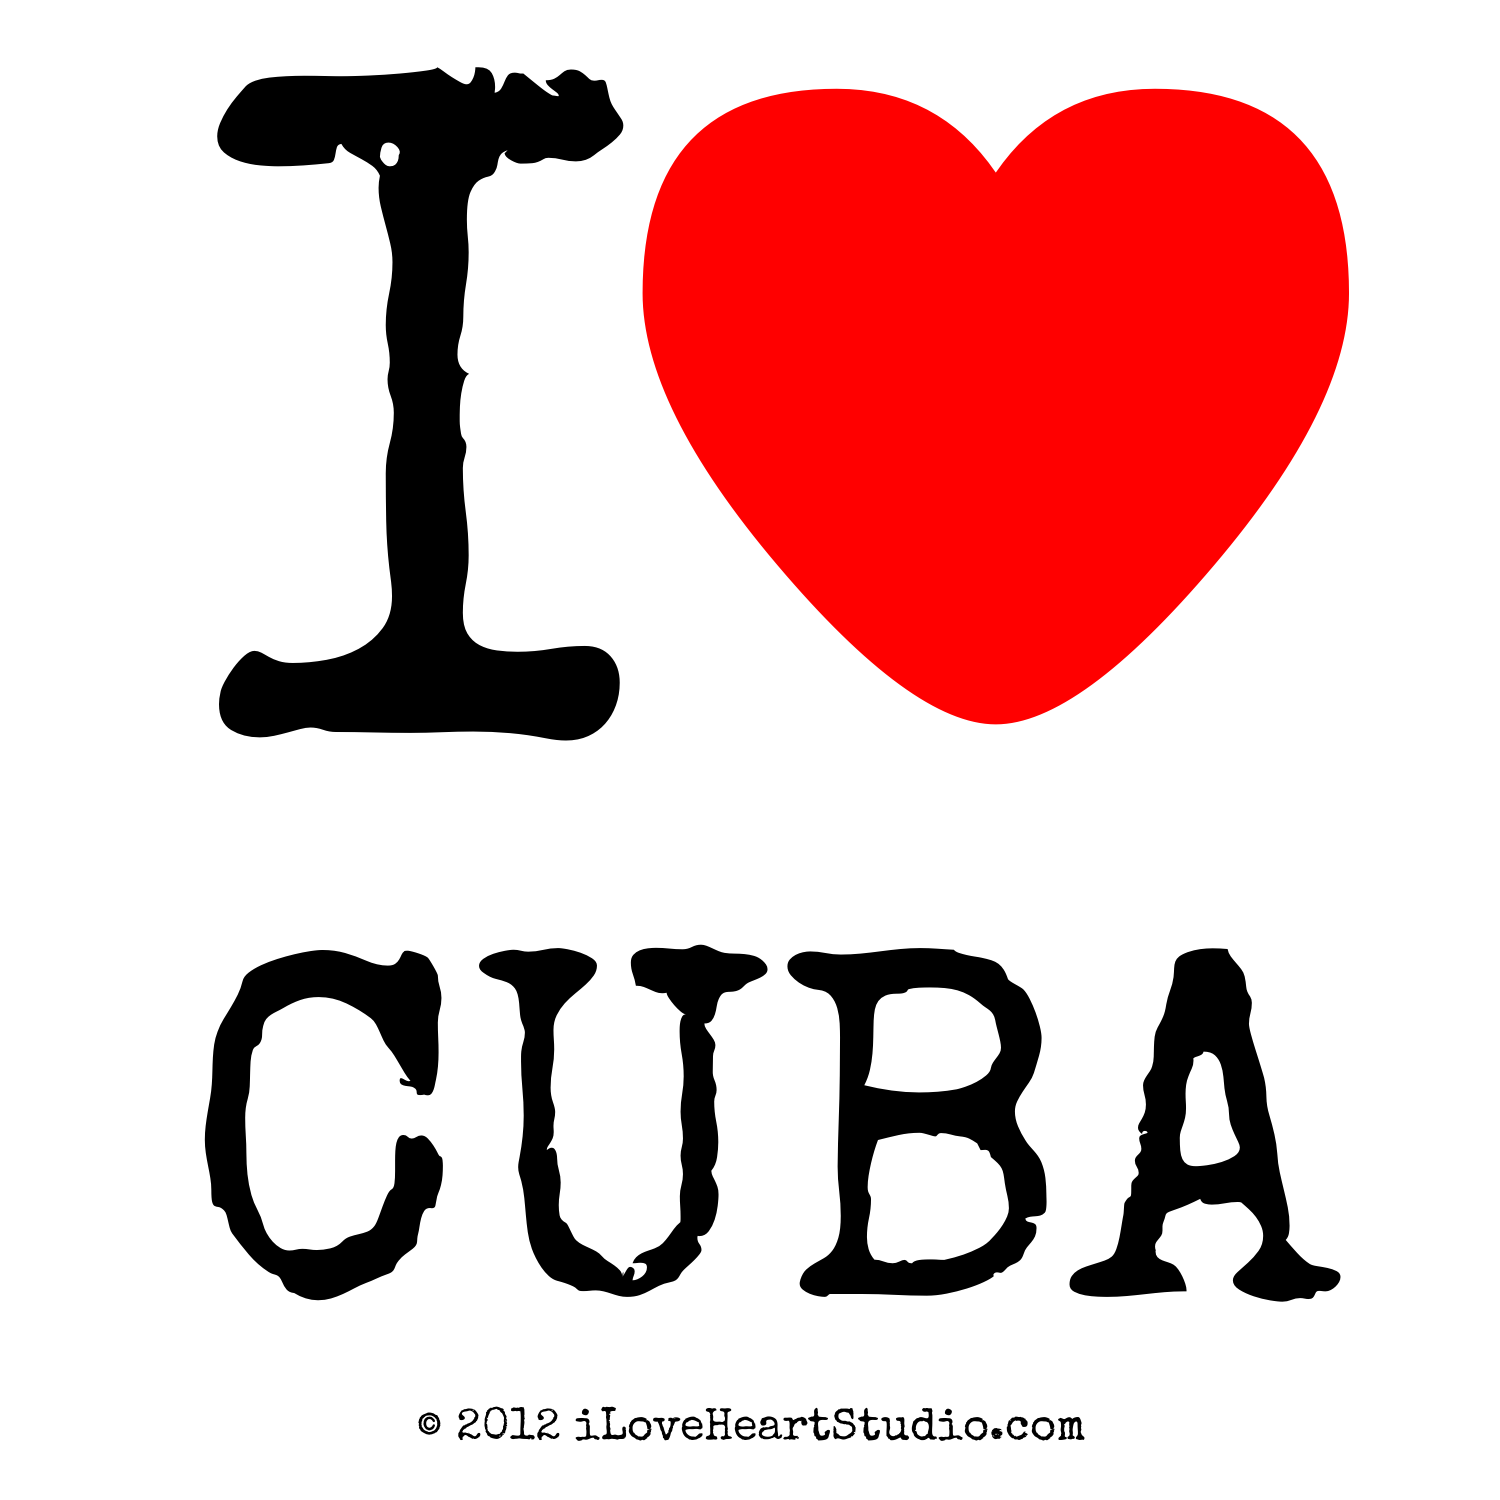 Kitchen Colours And Designs I Love Heart Cuba Design On Poster Mug T Shirt And Many